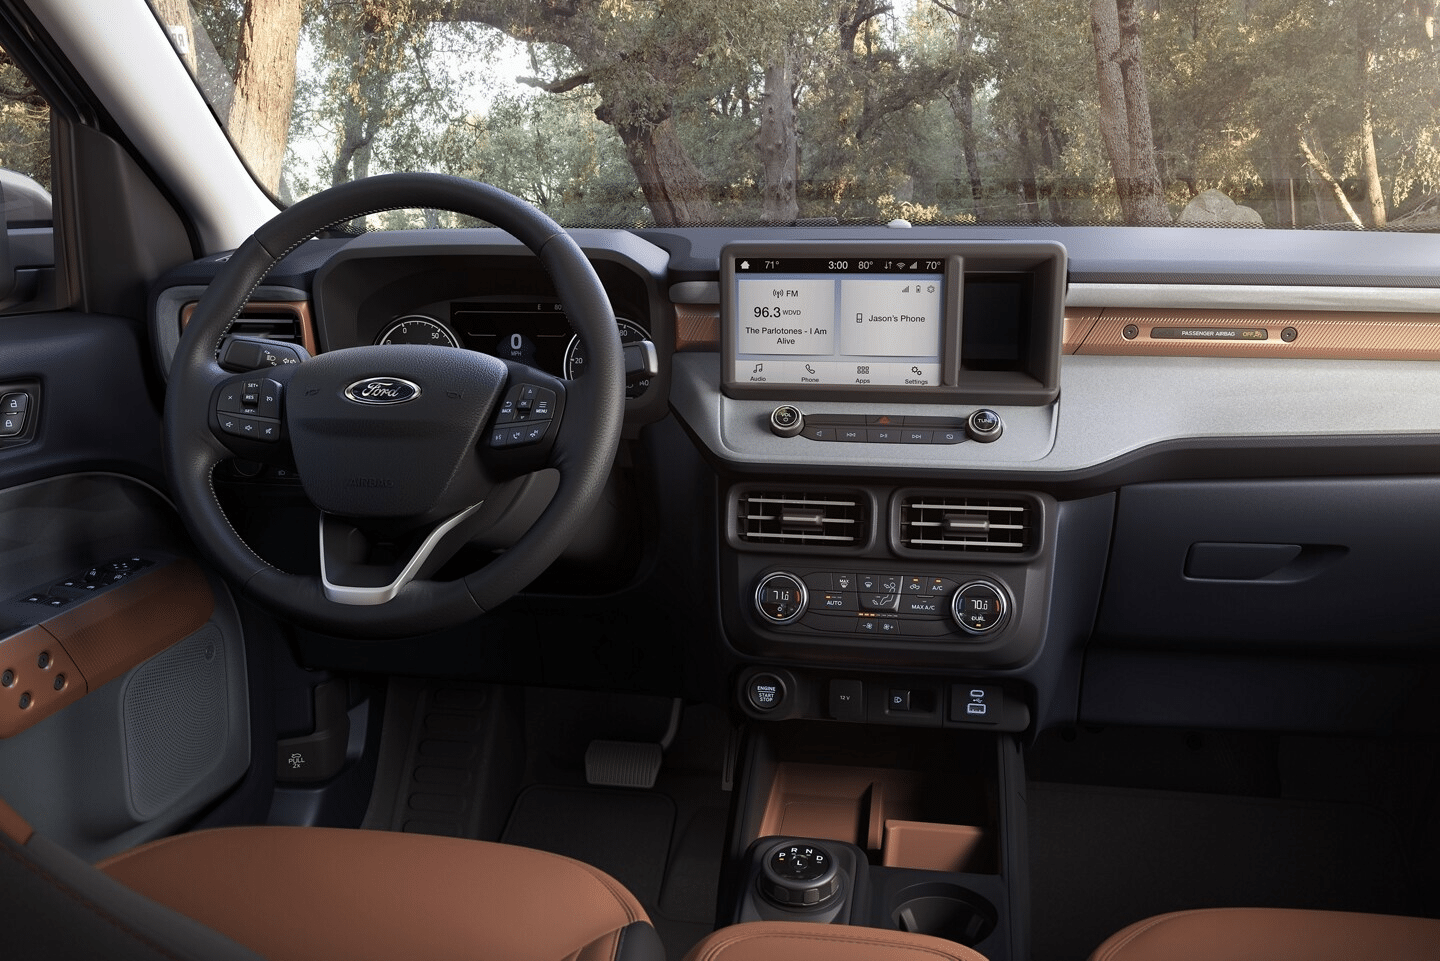 The 2022 Ford Maverick Lariat XL boasts an 8 inch center touch screen